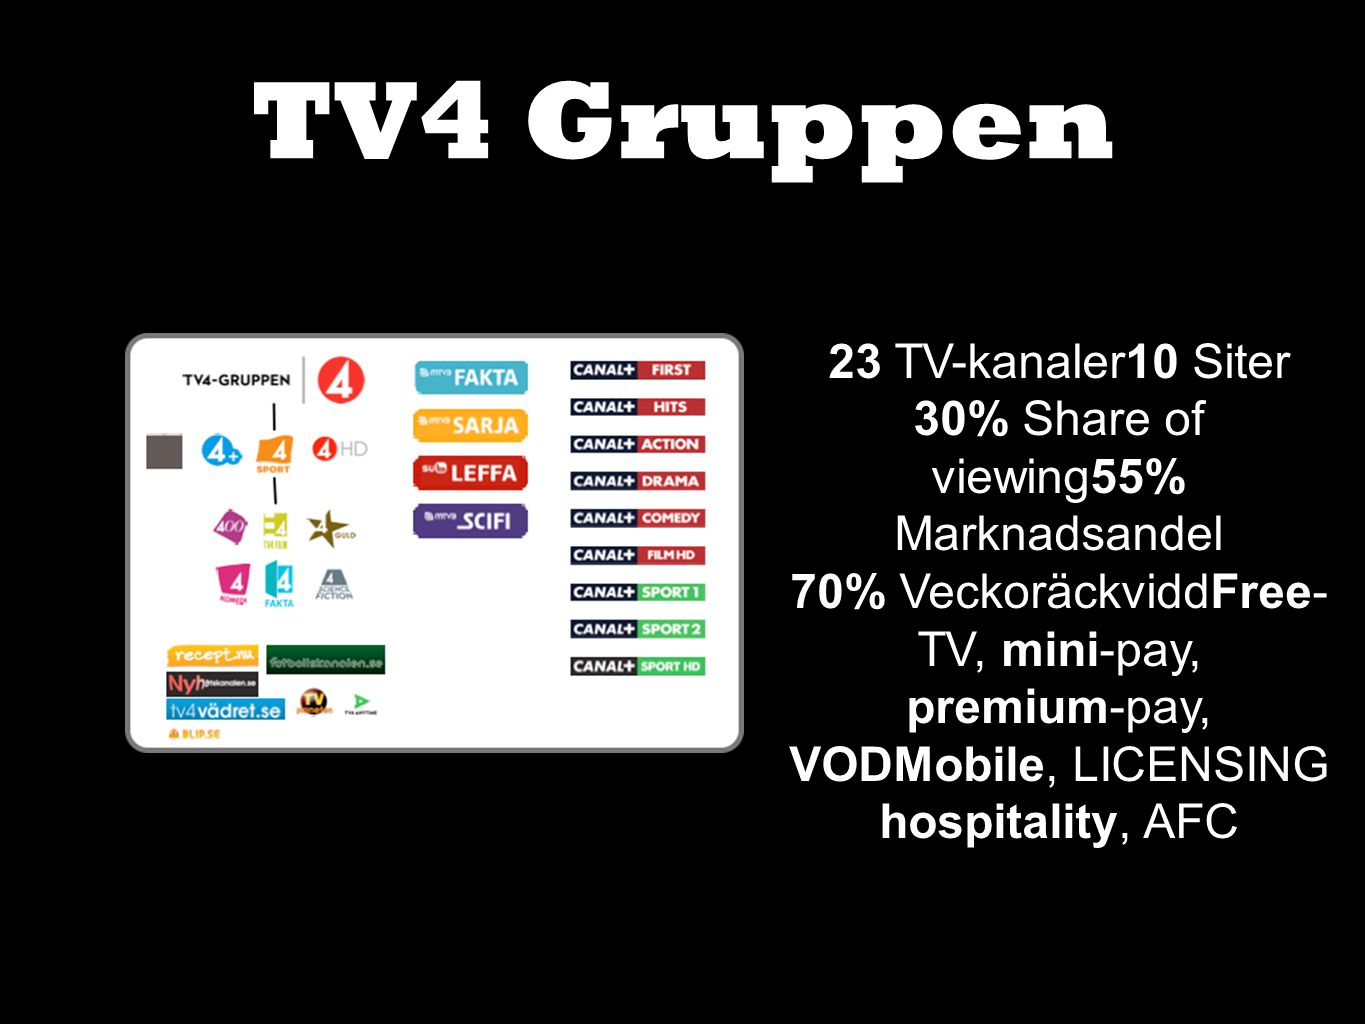 TV4 Gruppen 23 TV-kanaler10 Siter 30% Share of viewing55% Marknadsandel 70% VeckoräckviddFree- TV, mini-pay, premium-pay, VODMobile, LICENSING hospitality, AFC